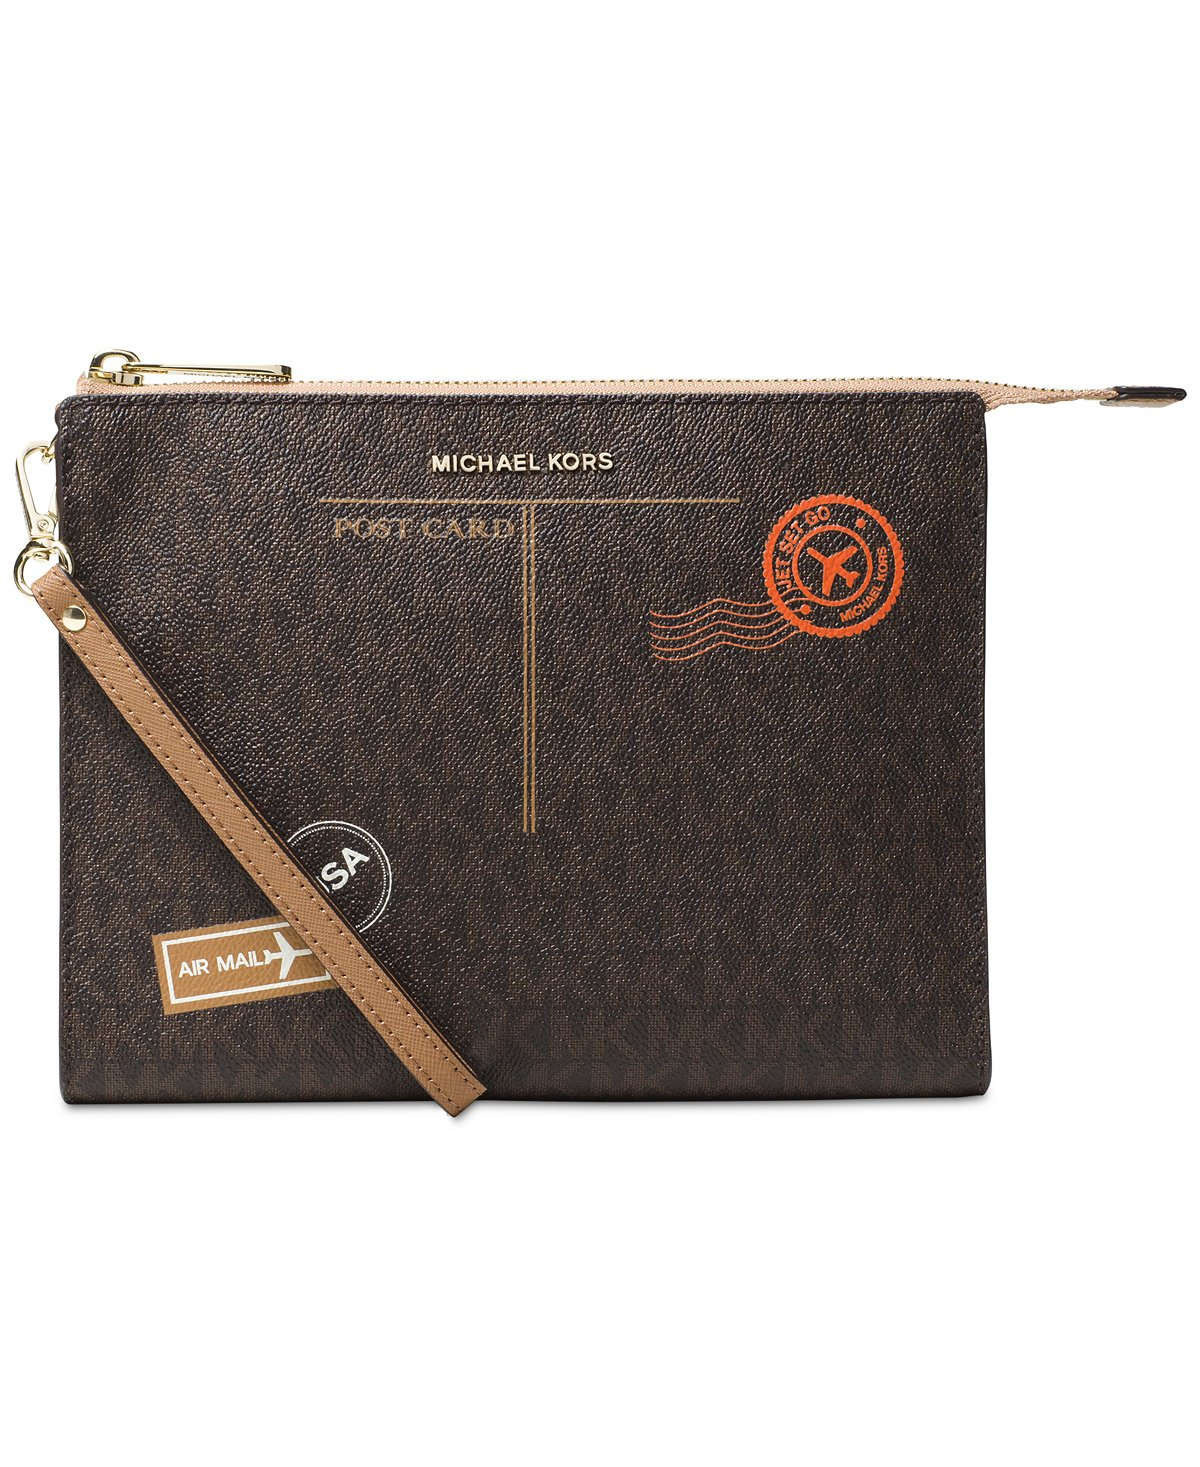 MICHAEL Michael Kors Signature Mail Large Box Travel Pouch, Brown/Cashew by Michael Kors